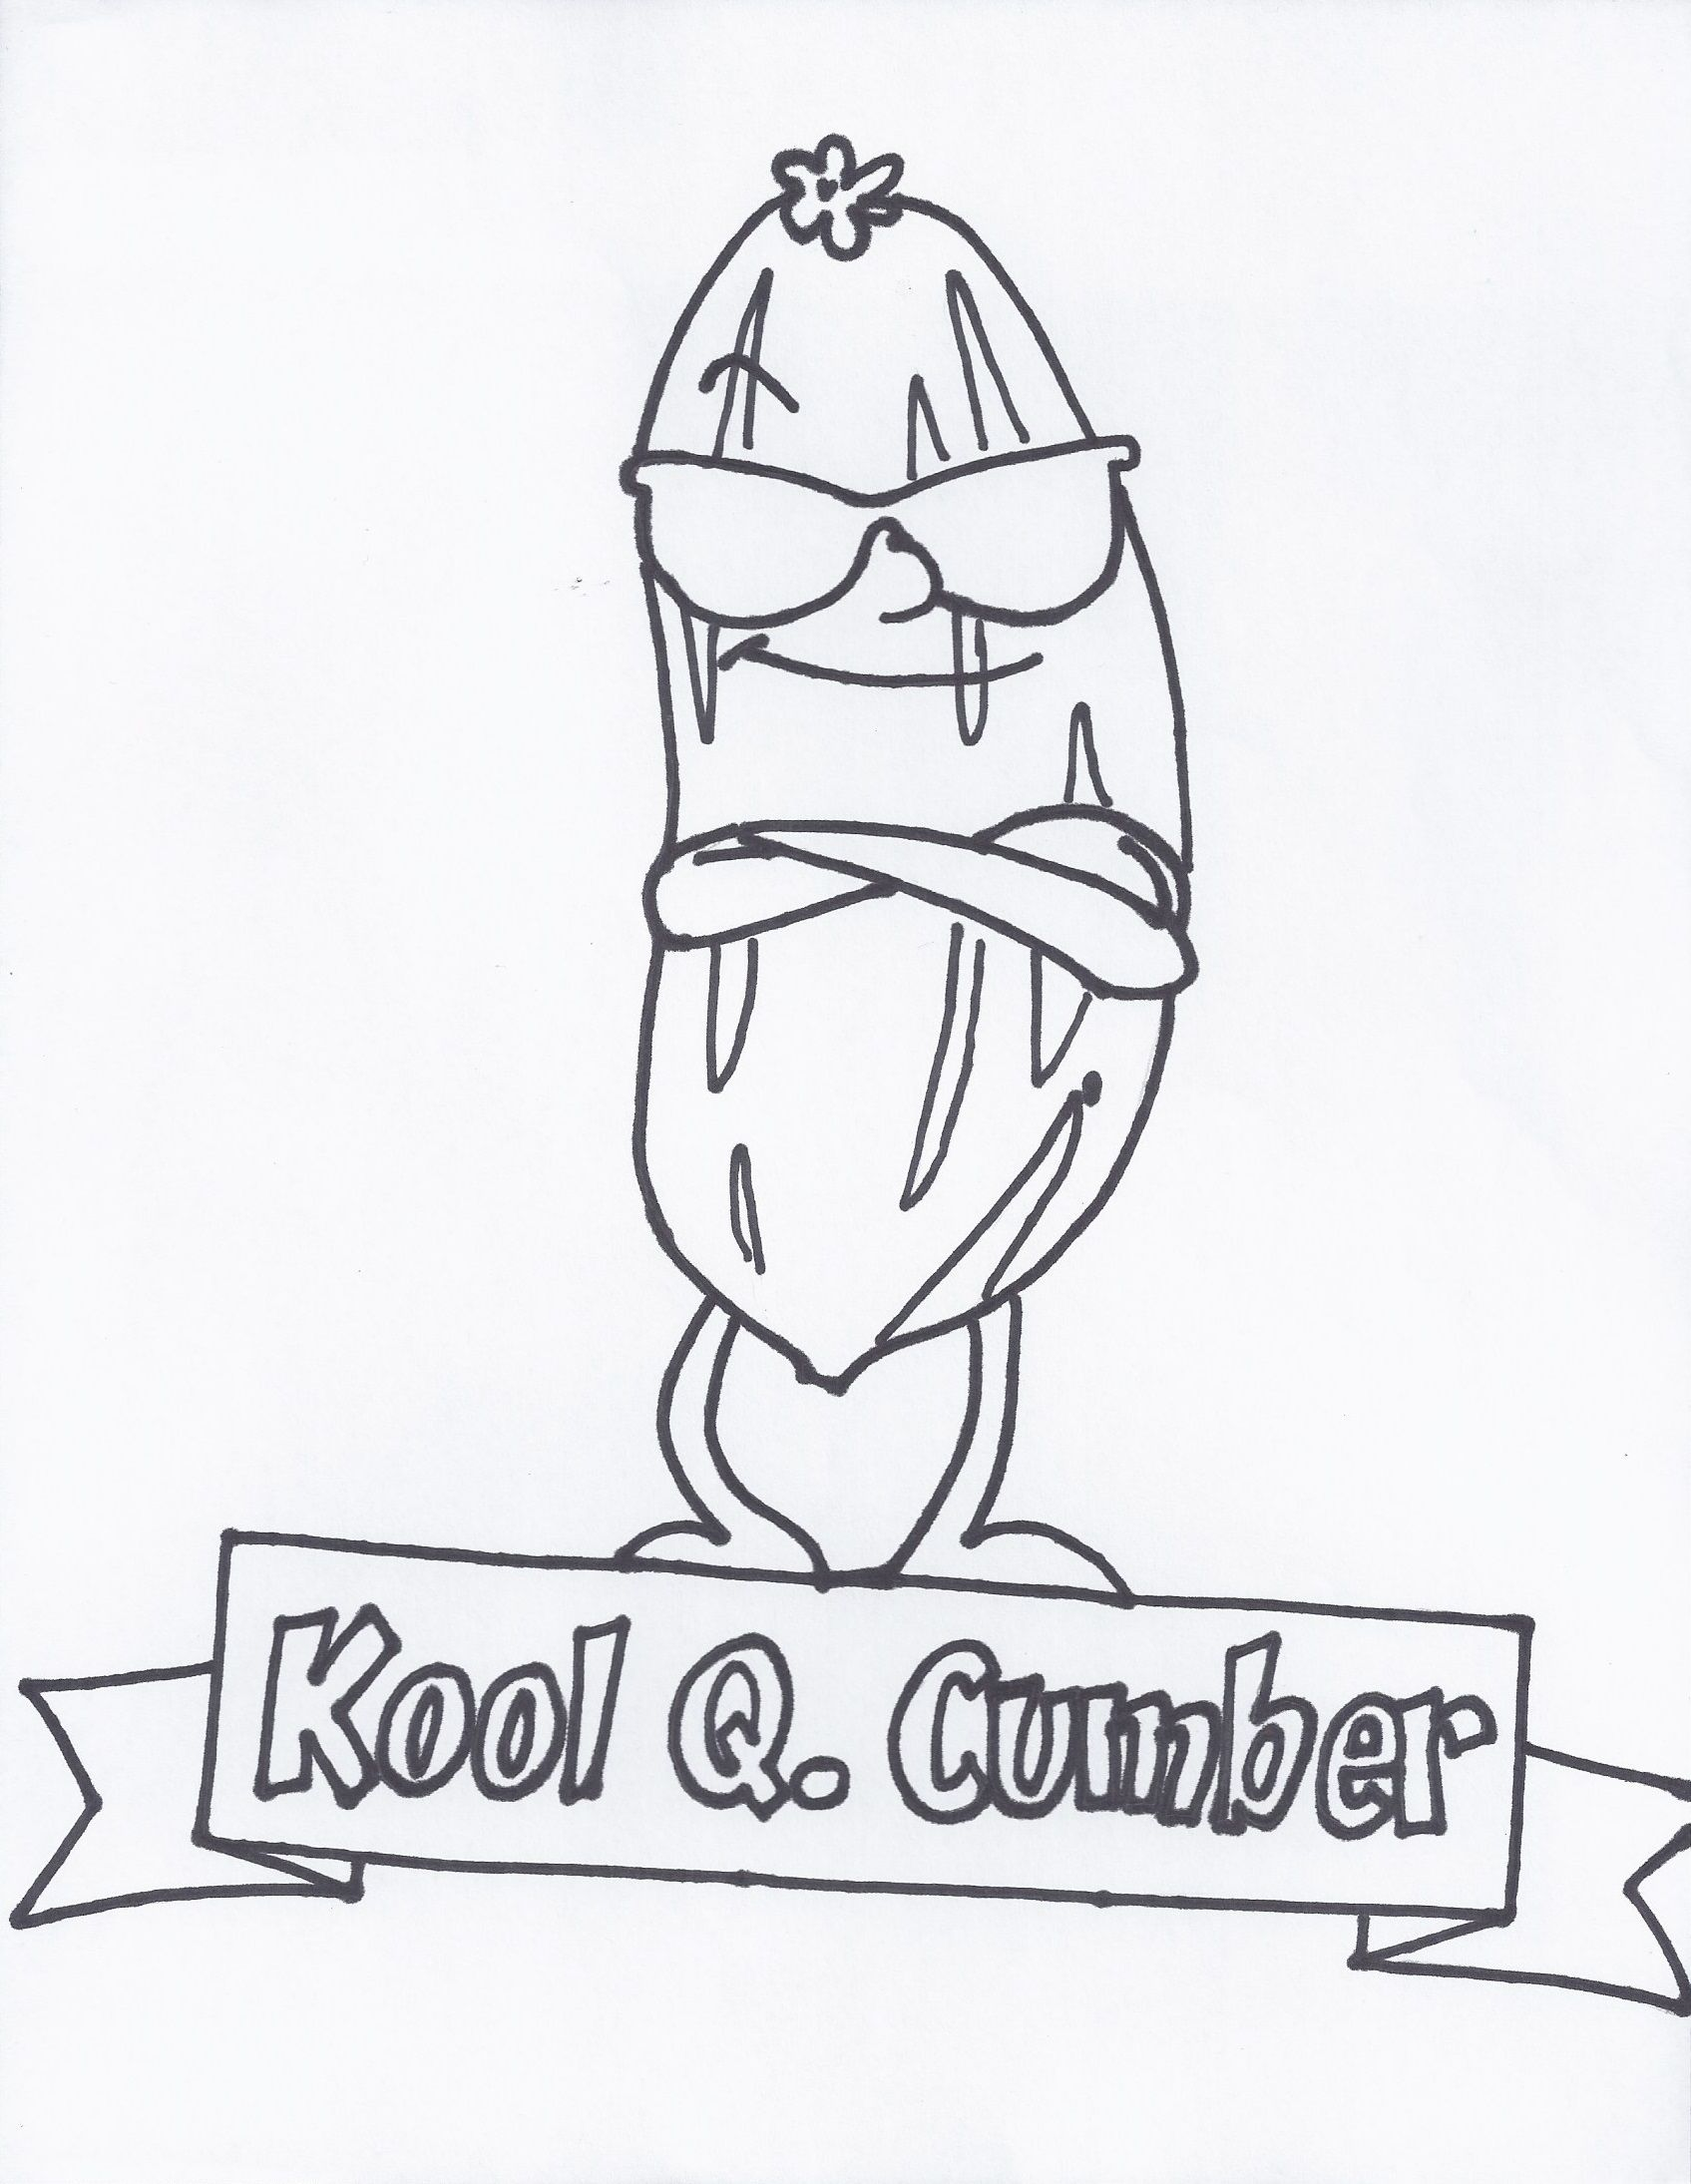 kool coloring pages Kool Q. Cumber: I help you stay calm (cool as a cucumber) when  kool coloring pages